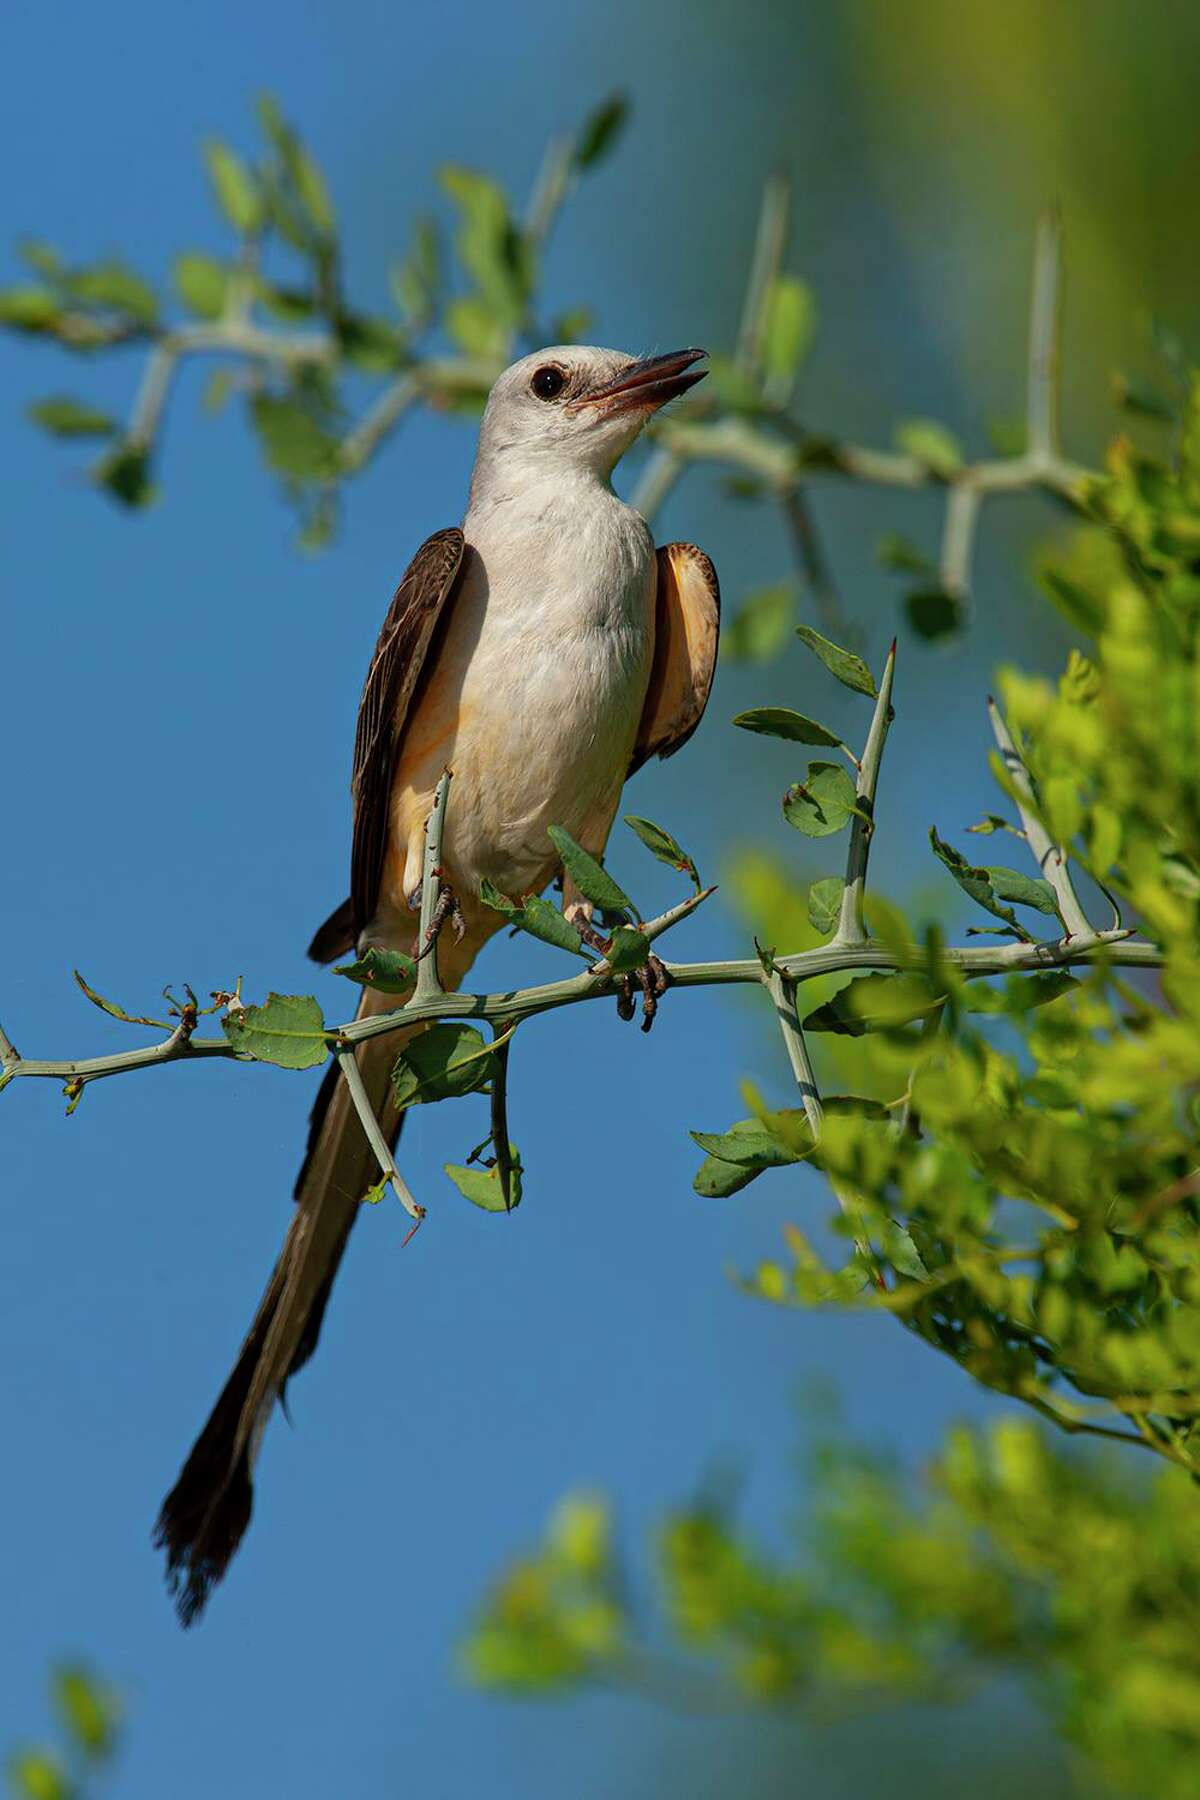 Adult scissor-tailed flycatchers have bifurcated-tails and are the state bird of Oklahoma.